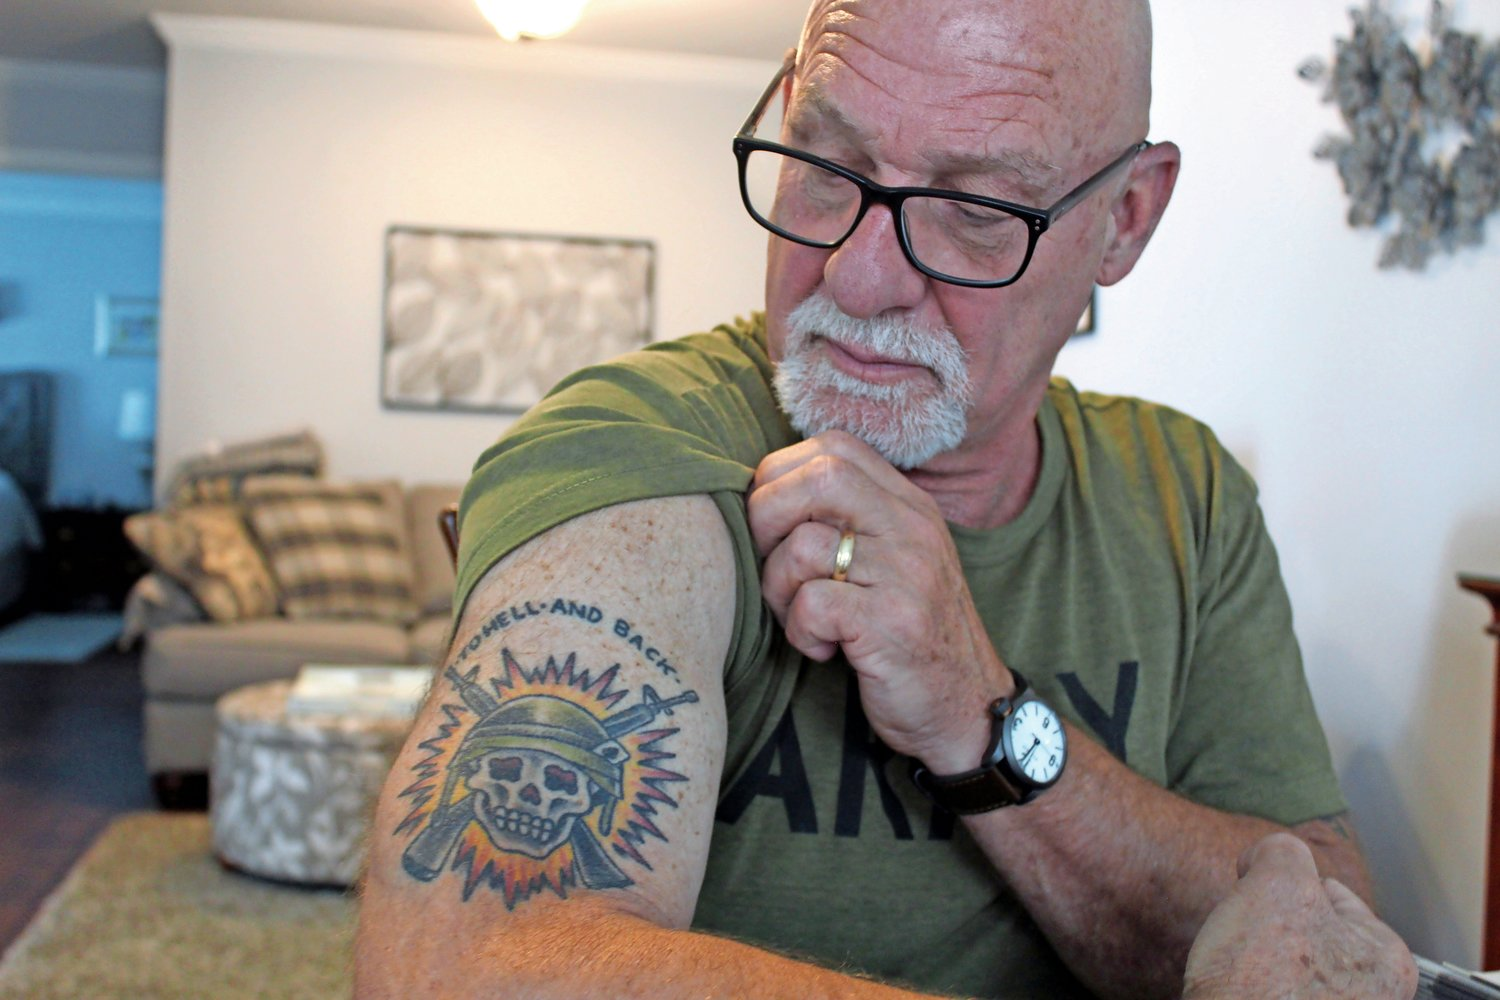 Army veteran Harold Jantz, originally from Bellmore, was recently awarded the Bronze Star Medal with valor for his heroic actions during the Vietnam War.